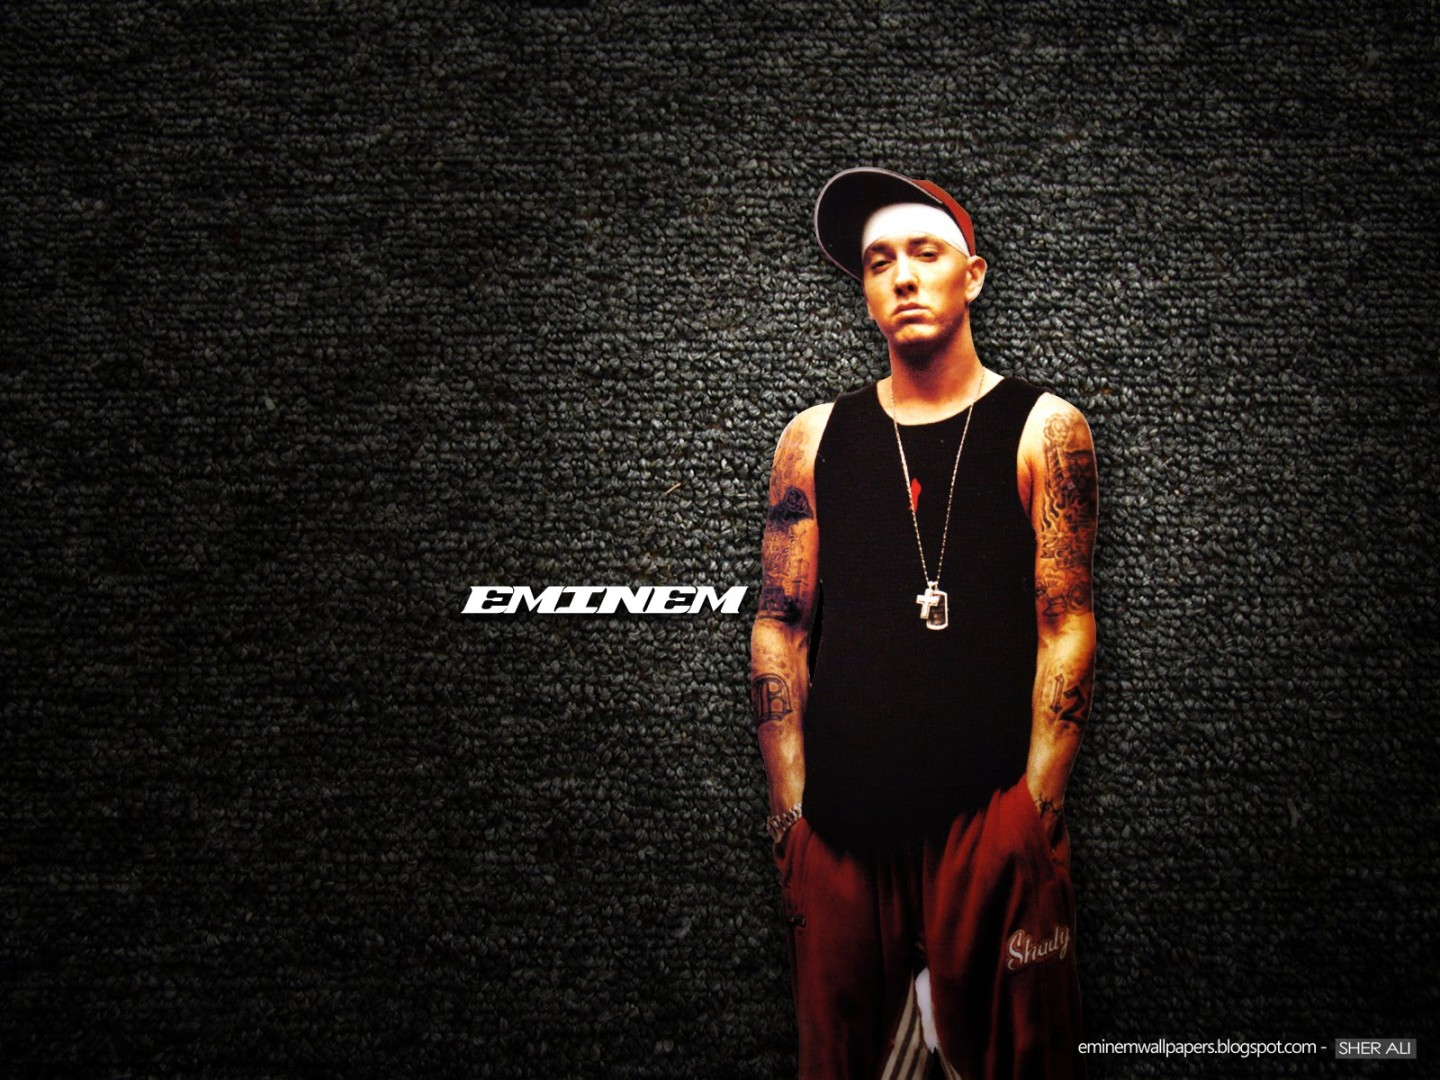 eminem wallpapers - photo #16